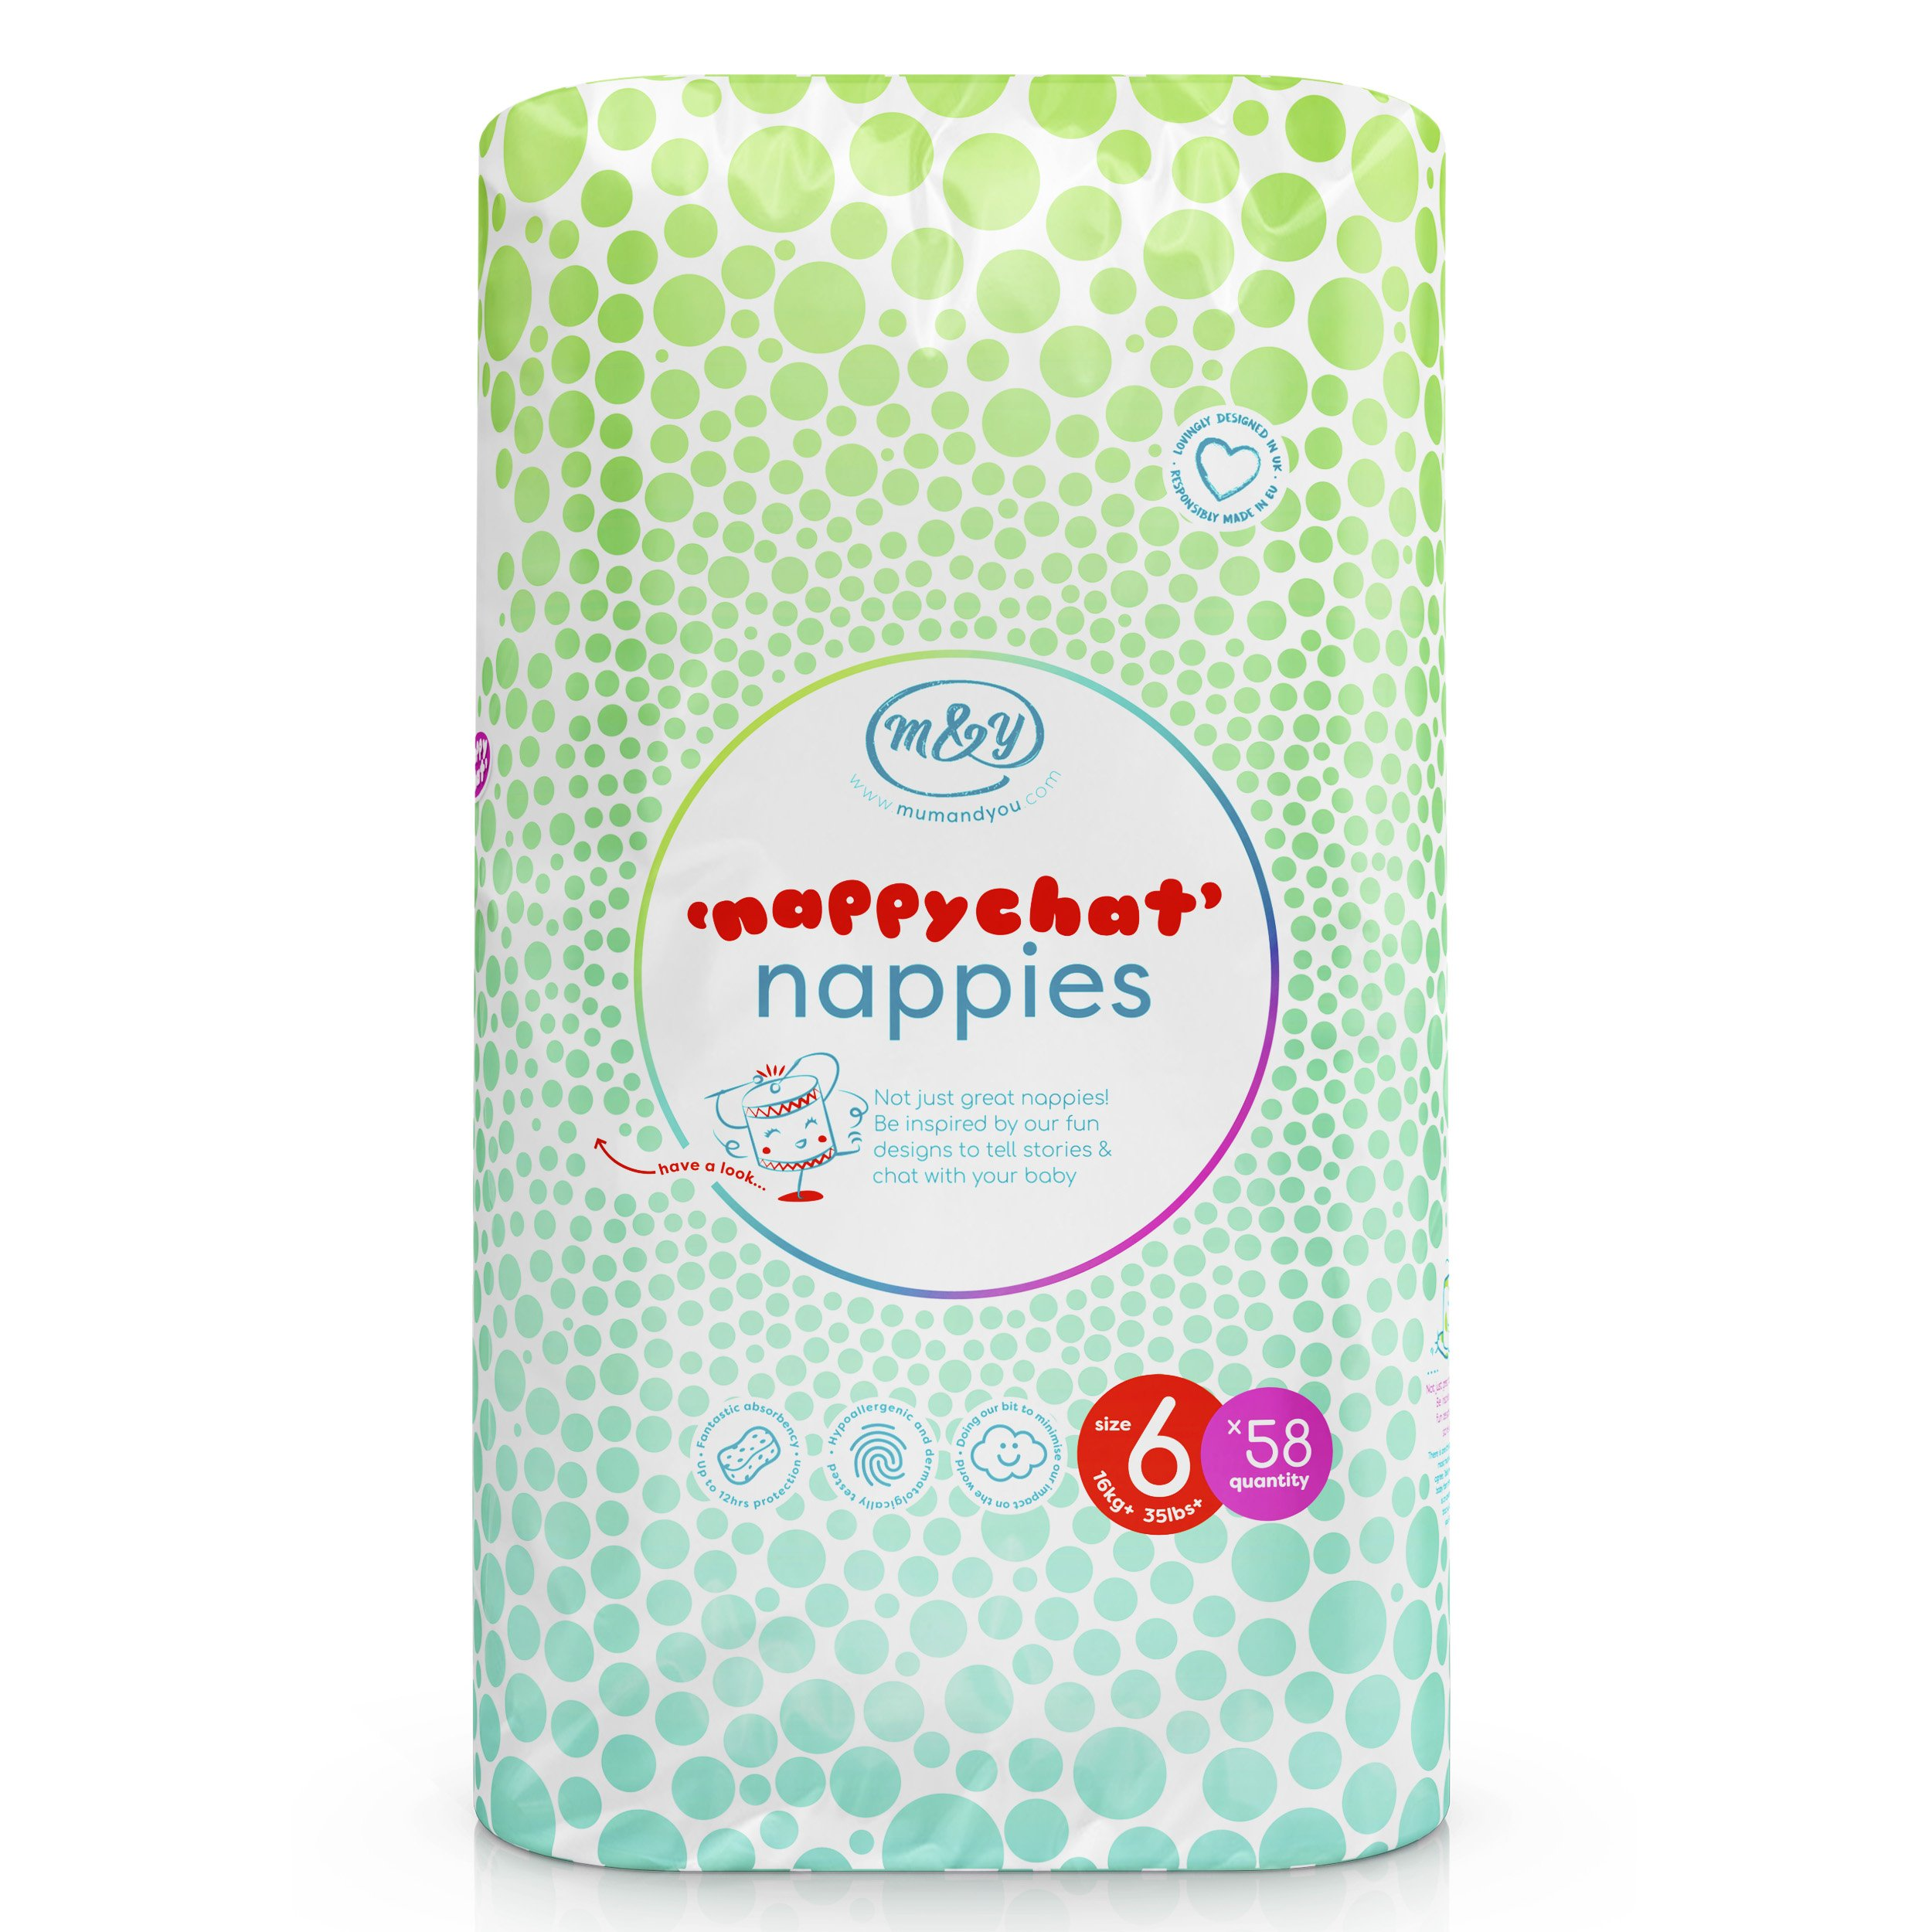 Mum & You Nappychat Eco-Diapers - Hypoallergenic, Dermatologically Tested. Free from Lotion and Perfumes (Size 6)